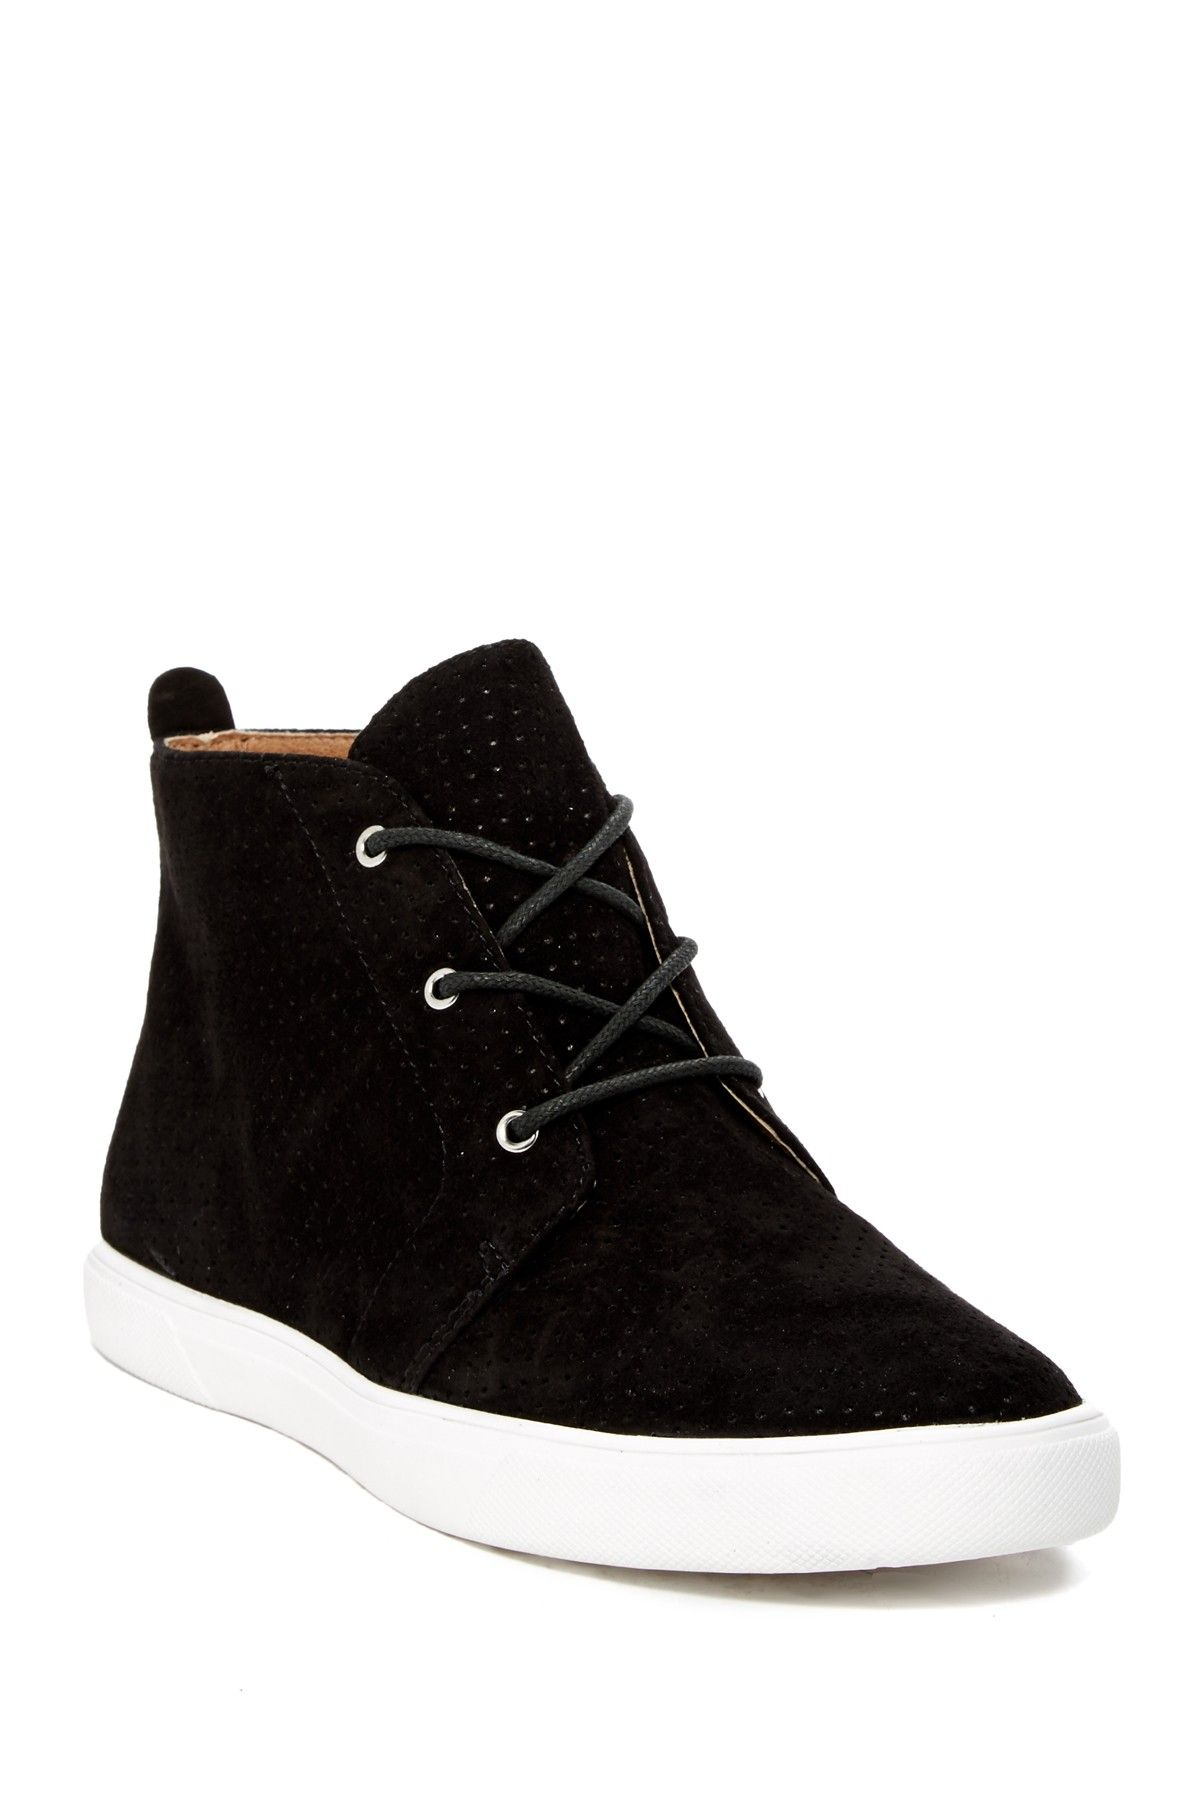 14th & Union - Kacee Lea Chukka  at Nordstrom Rack. Free Shipping on orders over $100.